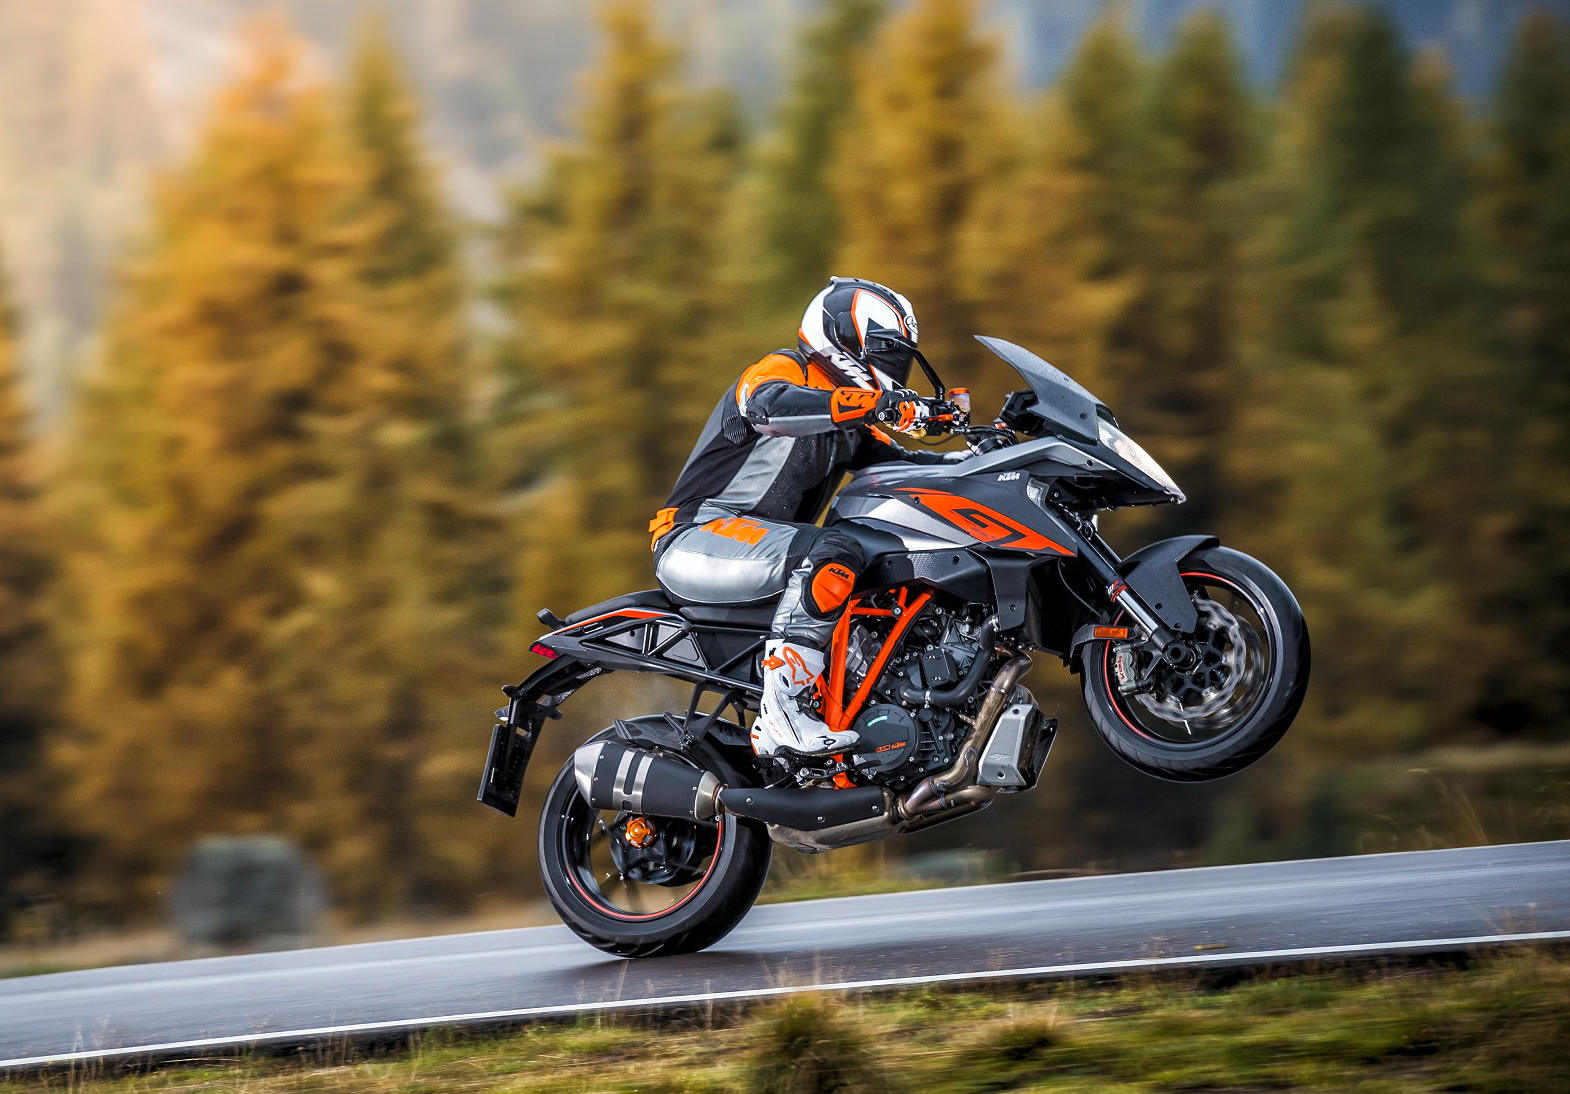 ktm introduces the 2017 1290 super duke gt sport touring gets a little bit crazy. Black Bedroom Furniture Sets. Home Design Ideas